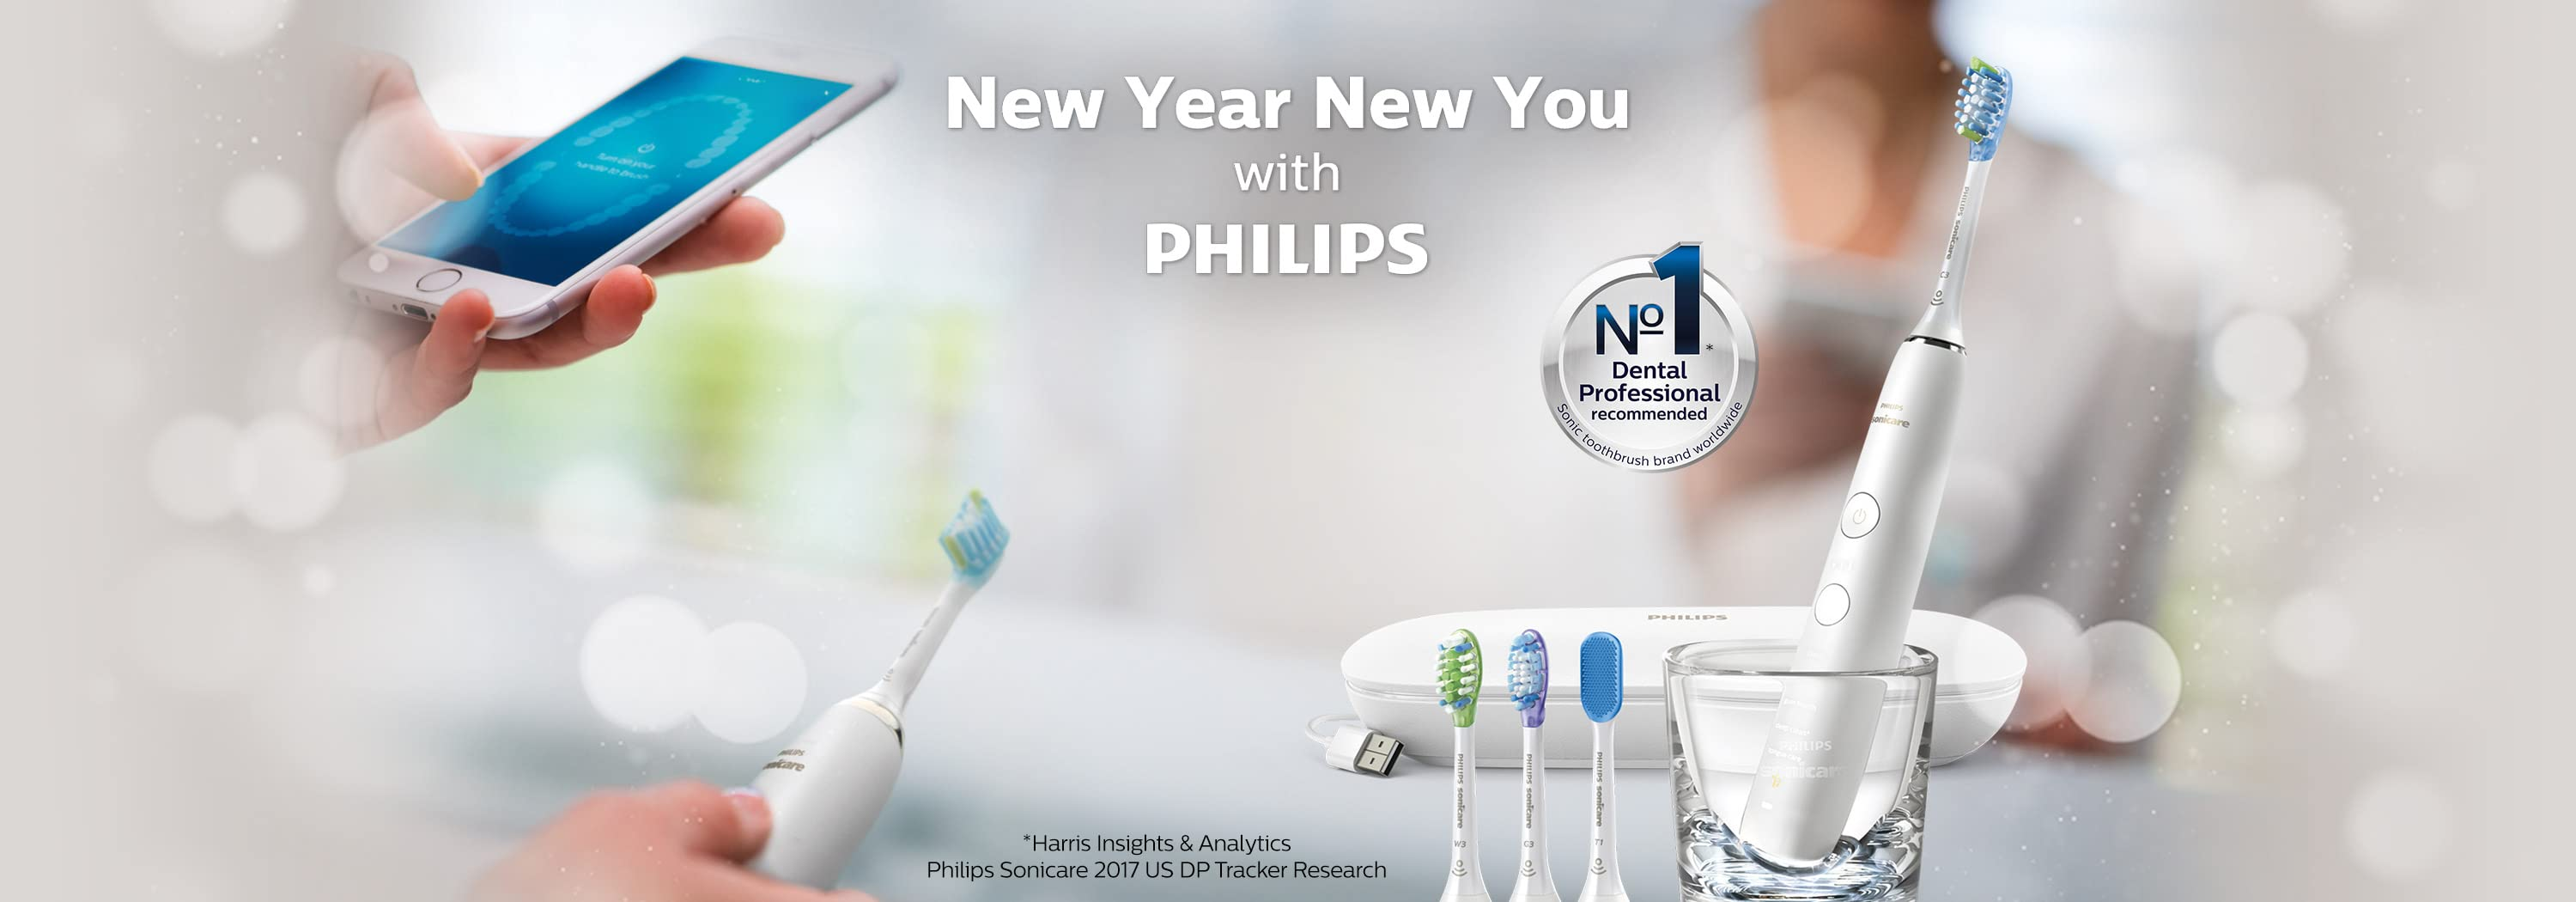 New Year New You with Philips